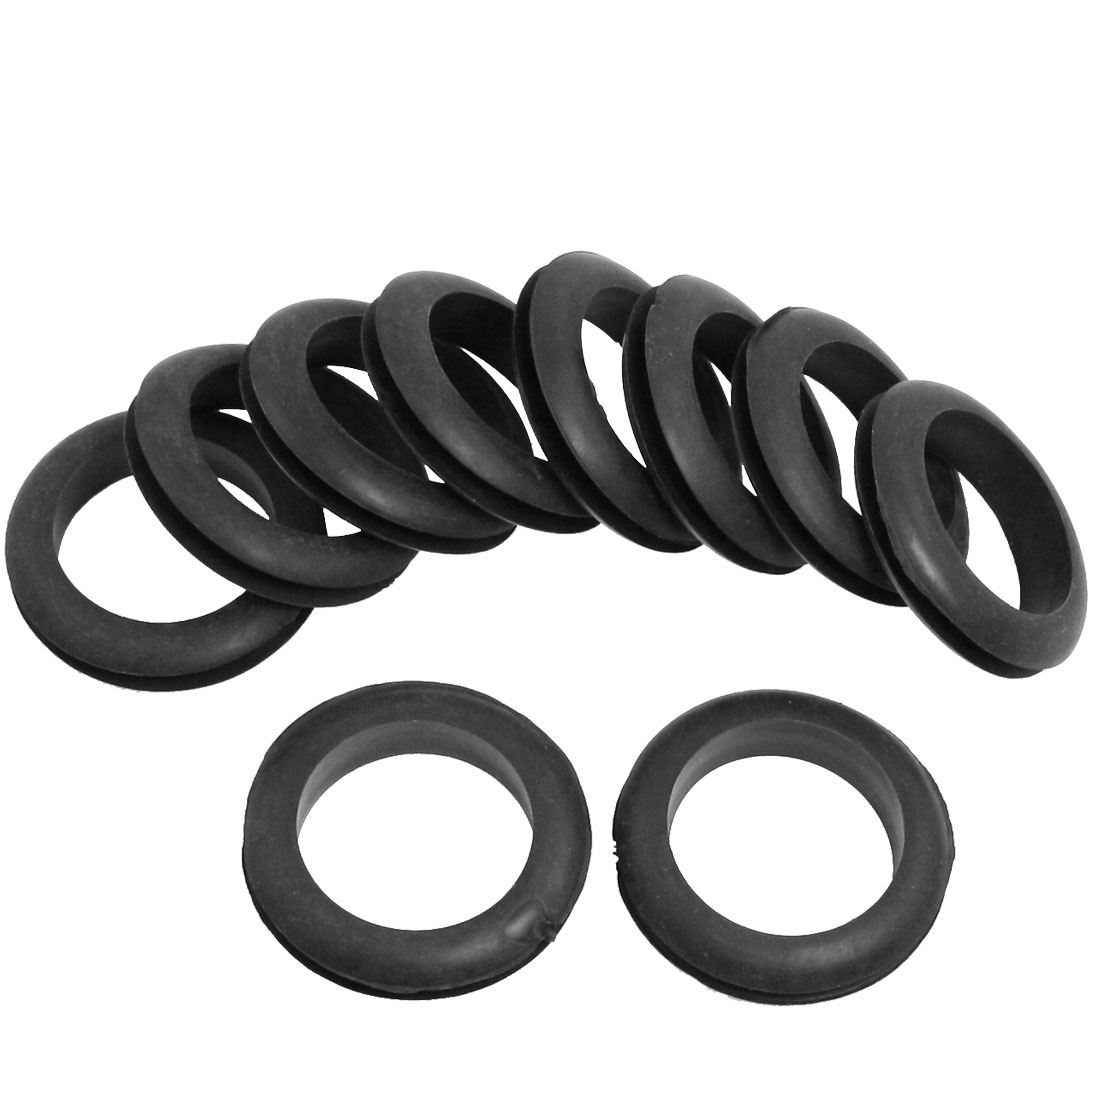 Wire Protective Black Rubber 40mm Inner Dia Double Sided Grommet